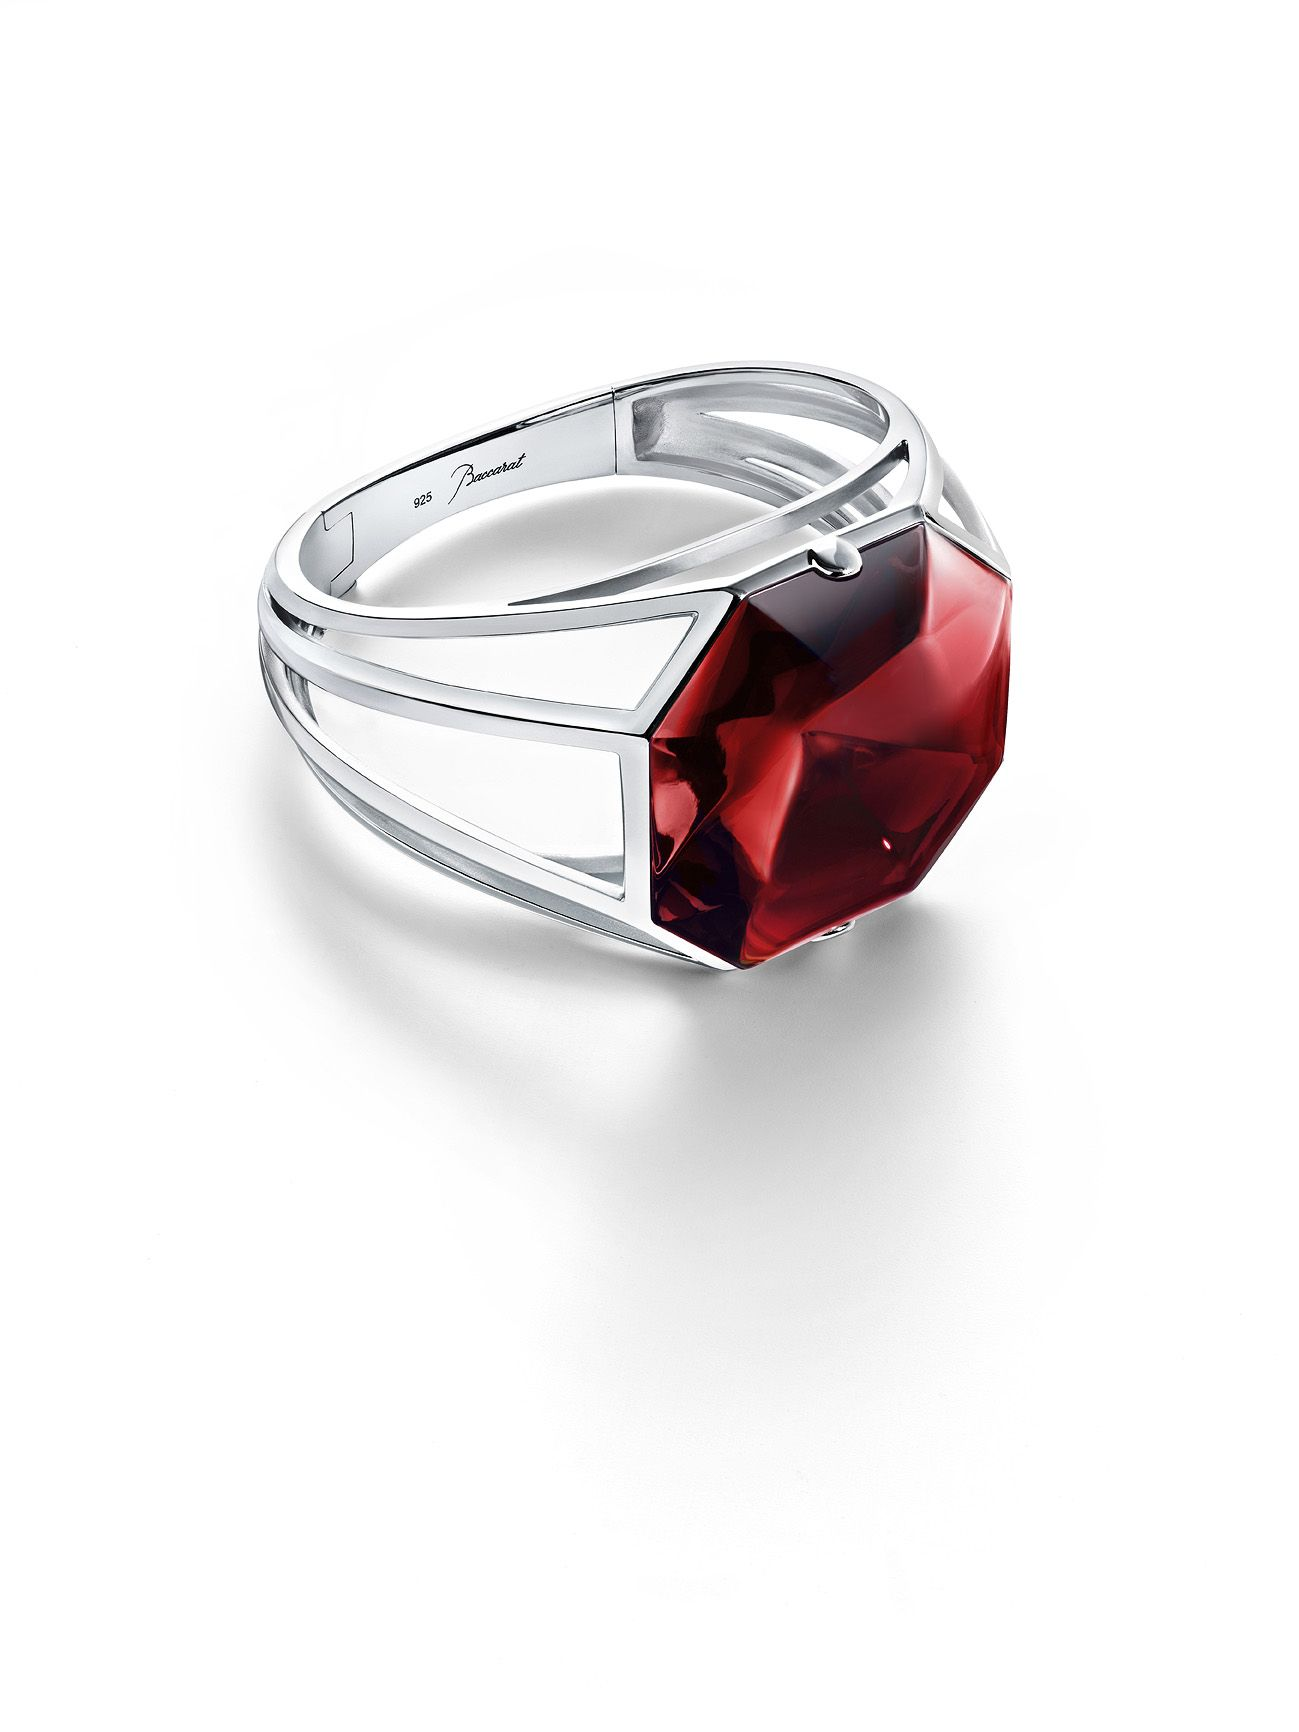 Baccarat cuff bracelet inspired by the emblematic red crystal octagon found in all Baccarat chandeliers.